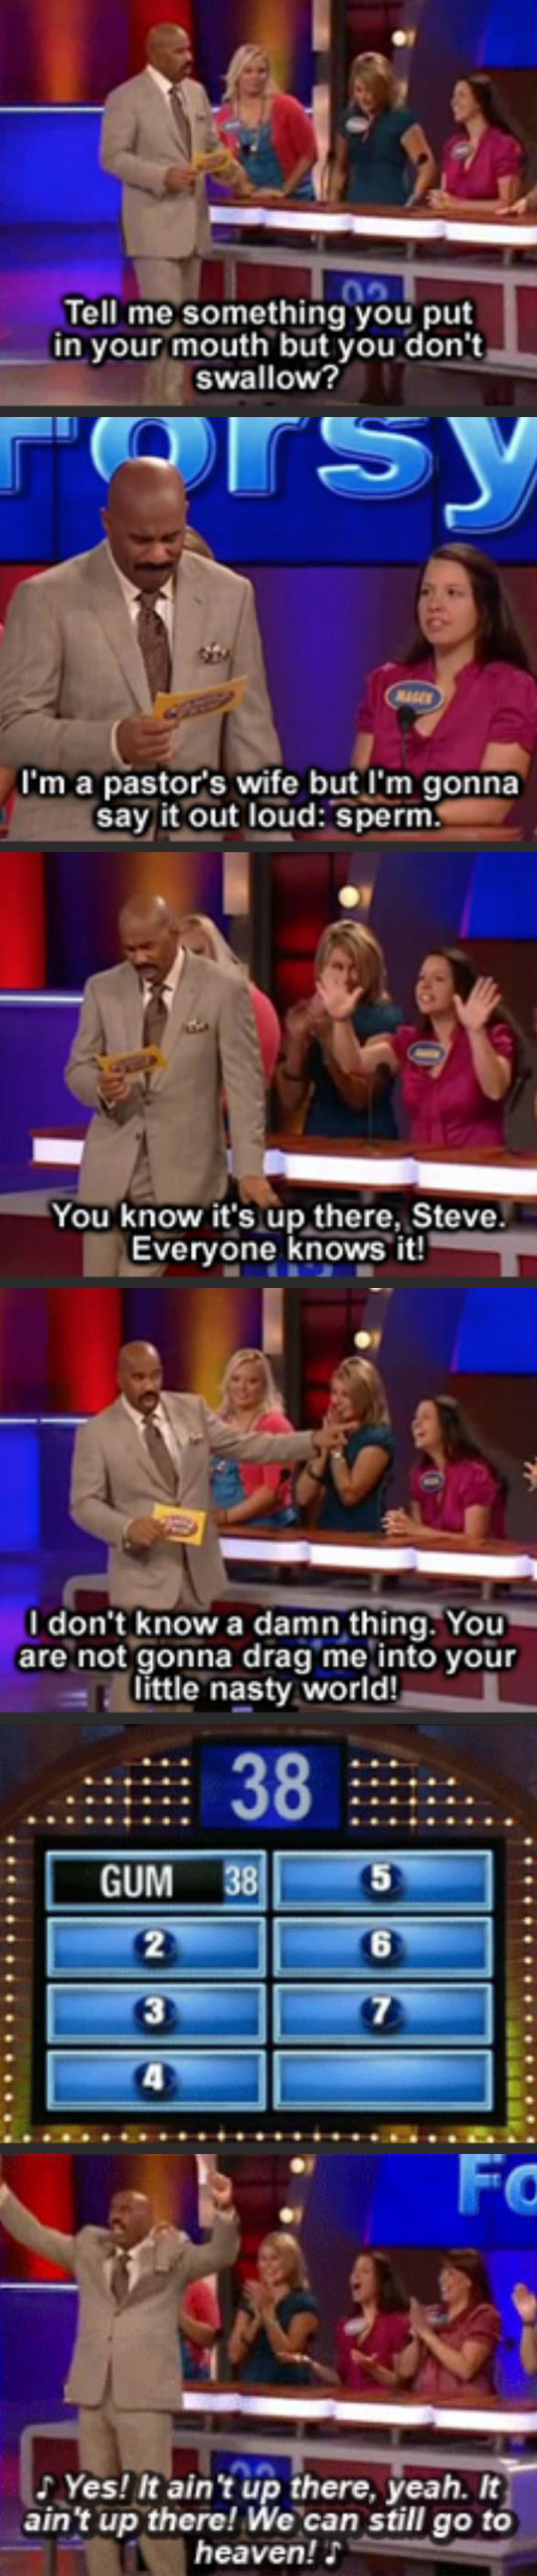 funny-Family-Feud-question-mouth-swallow